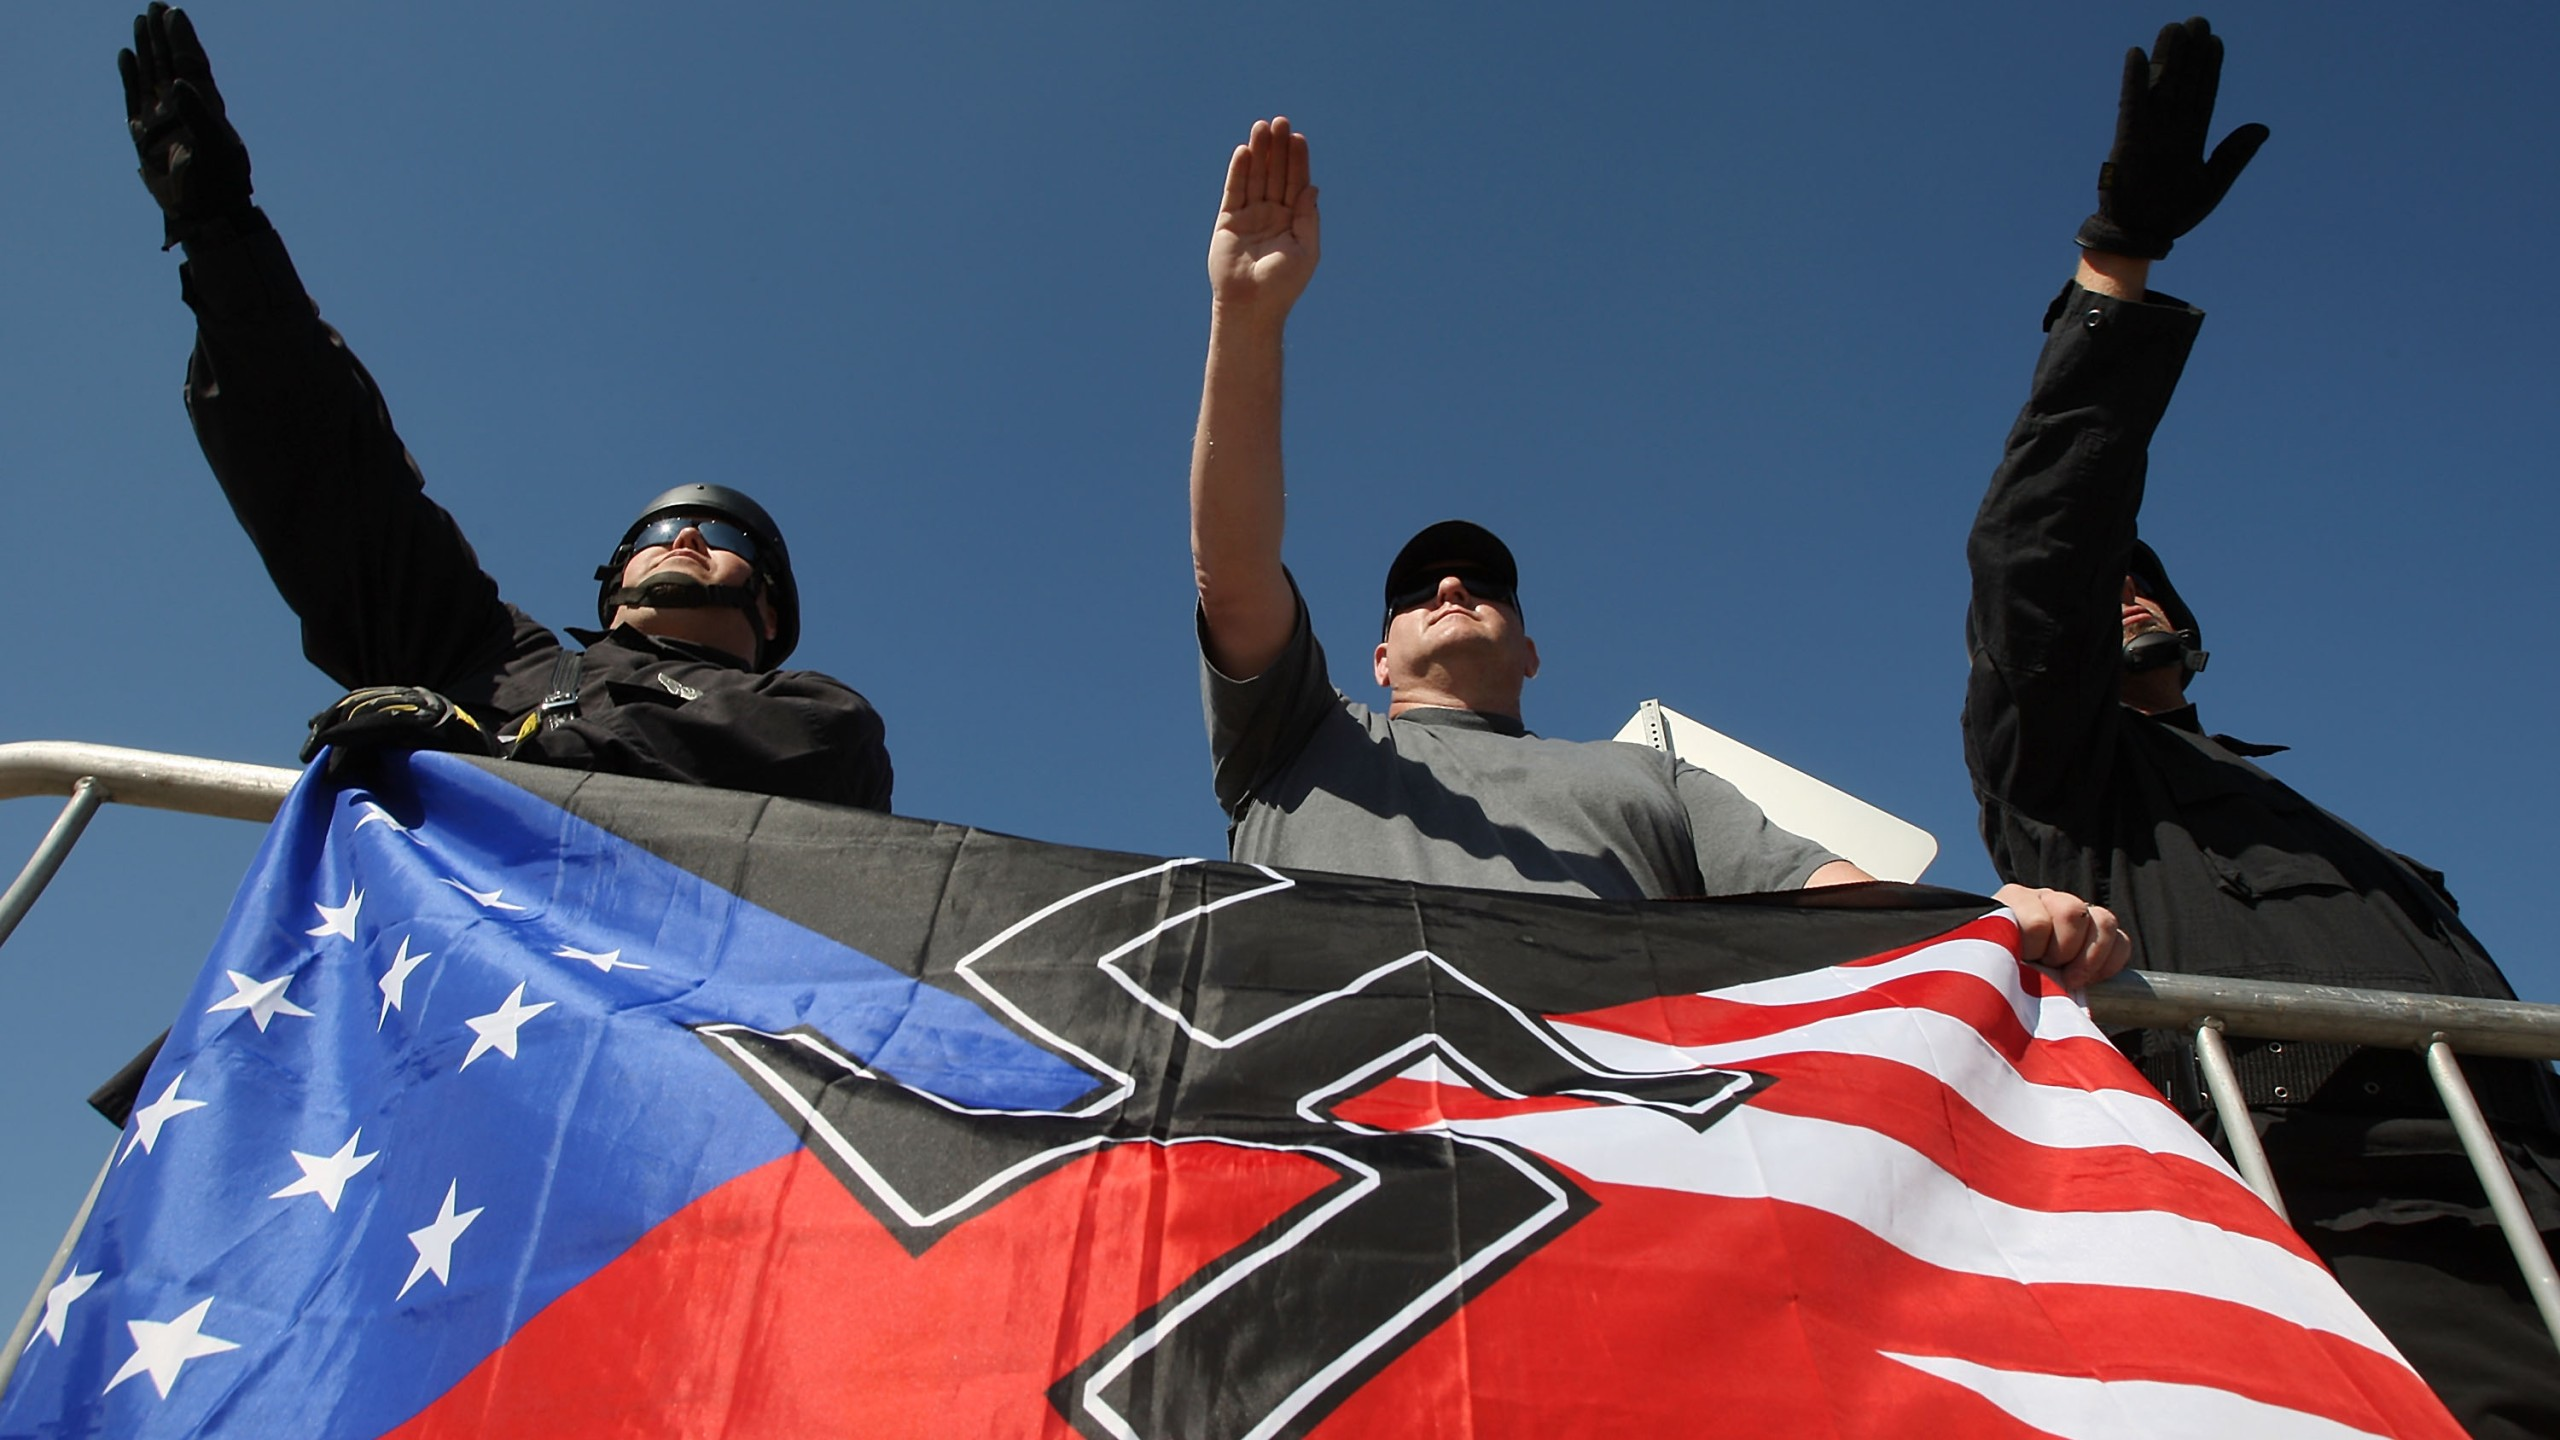 Members of the National Socialist Movement, salute during a rally on Oct. 24, 2009, in Riverside. (Credit: David McNew/Getty Images)